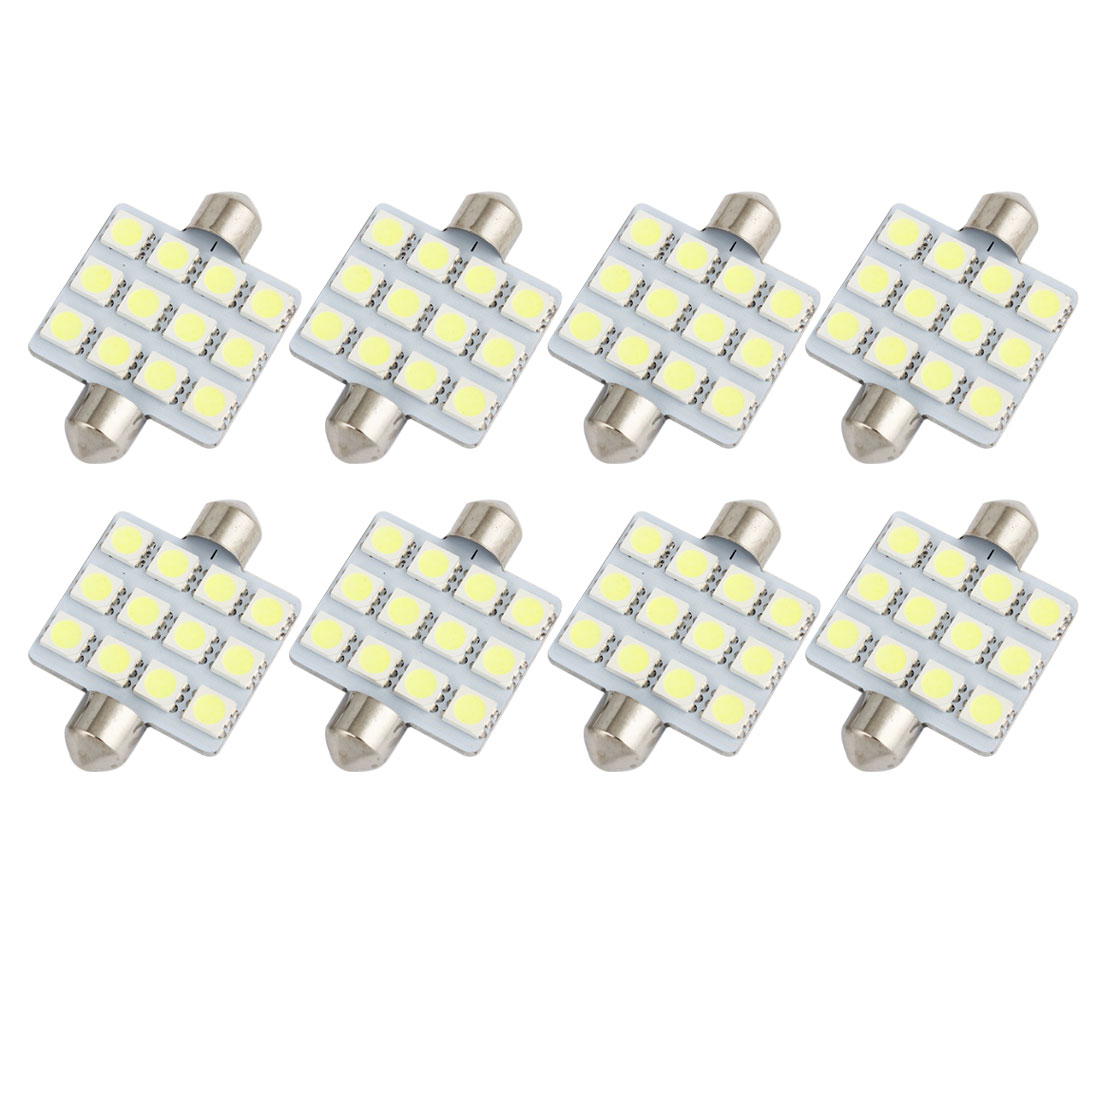 8pcs 41mm 5050 SMD 12-LED Festoon Dome Light White 6413 211-2 212-2 560 Internal